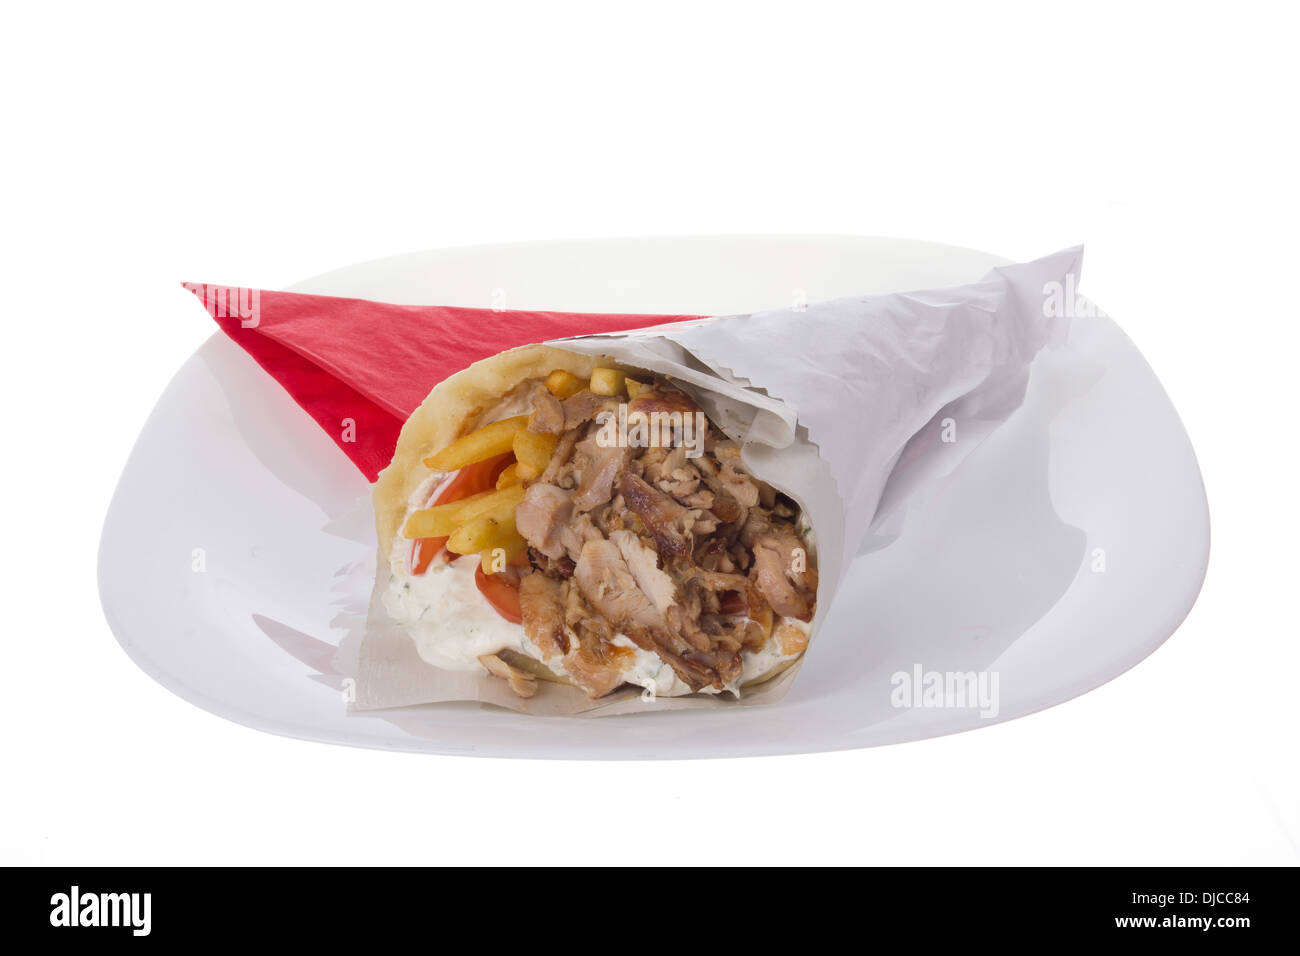 giro with pork and french fries on white plate - Stock Image